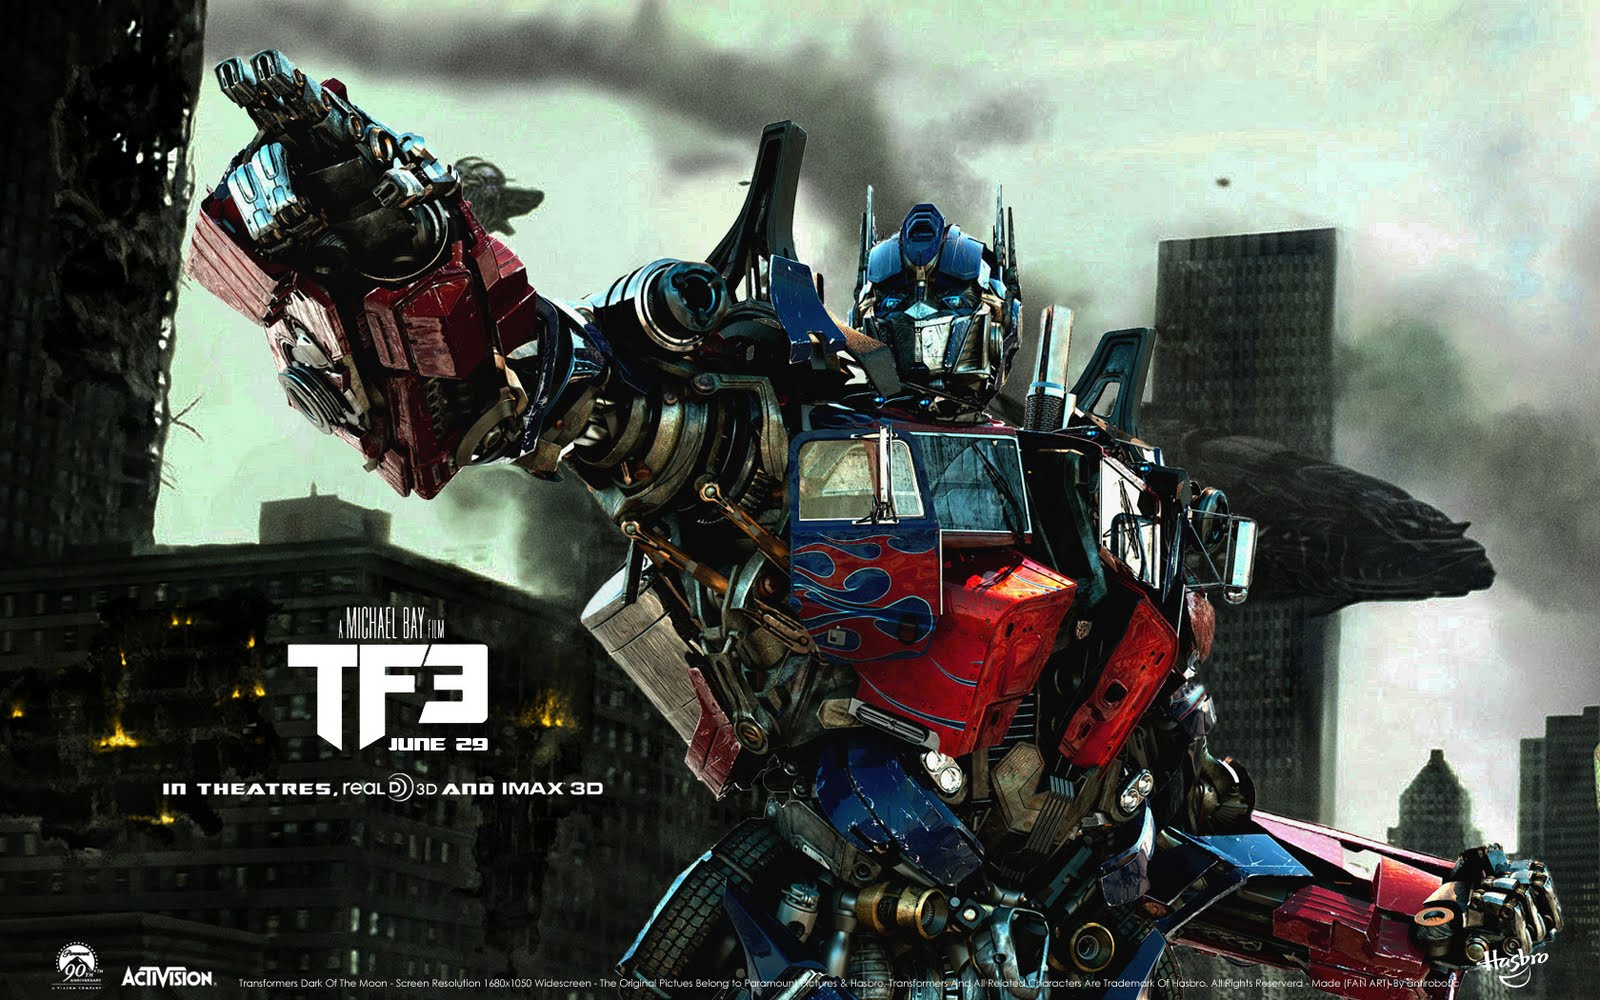 Optimus-tf3-wallpaper